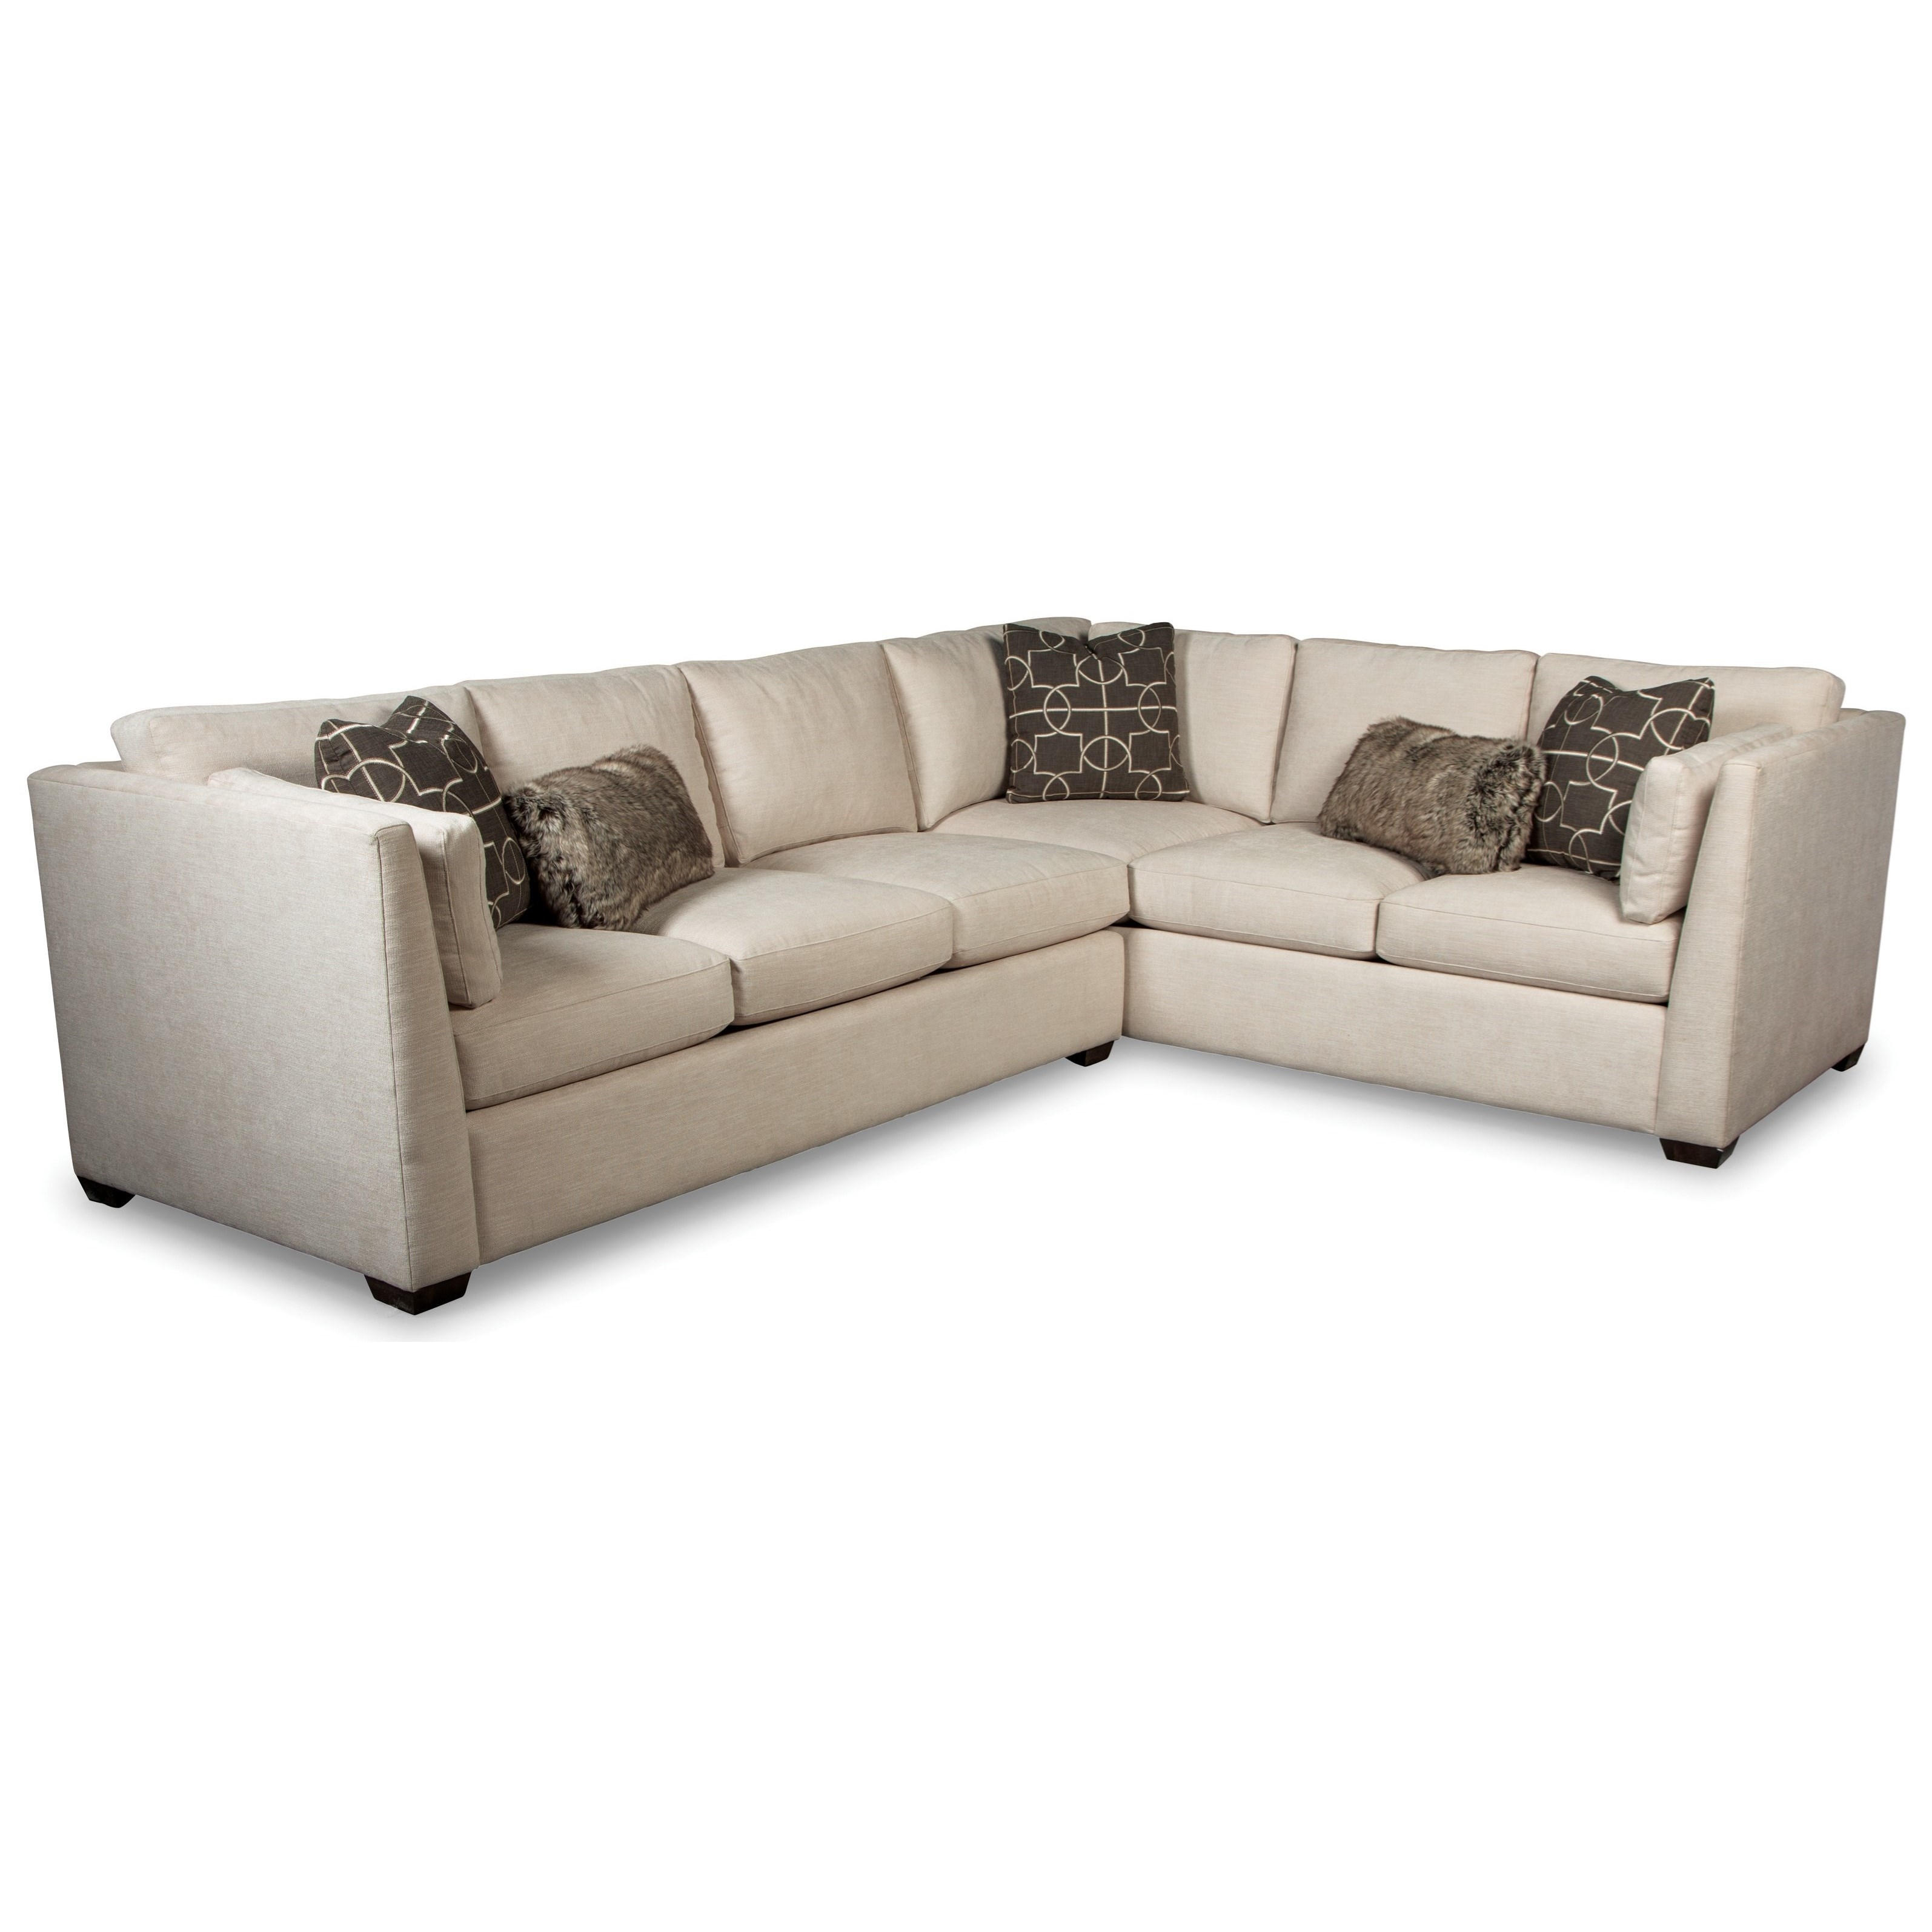 Sectional Sofas Jackson Mississippi Sectional Sofas Store With Regard To 10 Piece Sectional Sofa (Image 10 of 15)